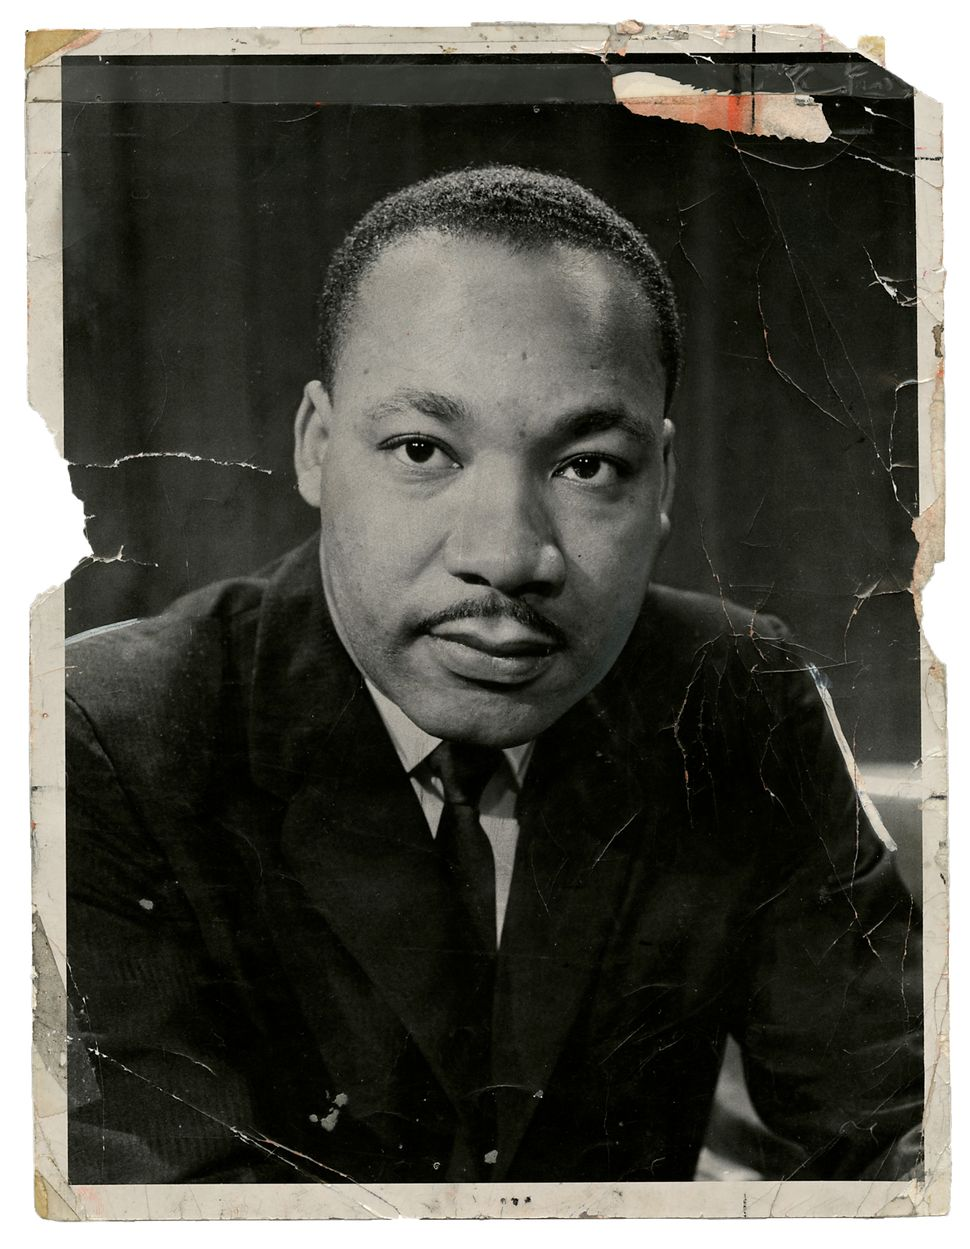 1963: An iconic portrait of the Rev. Dr. Martin Luther King Jr. was more or less shot from the hip. Allyn Baum snapped this p